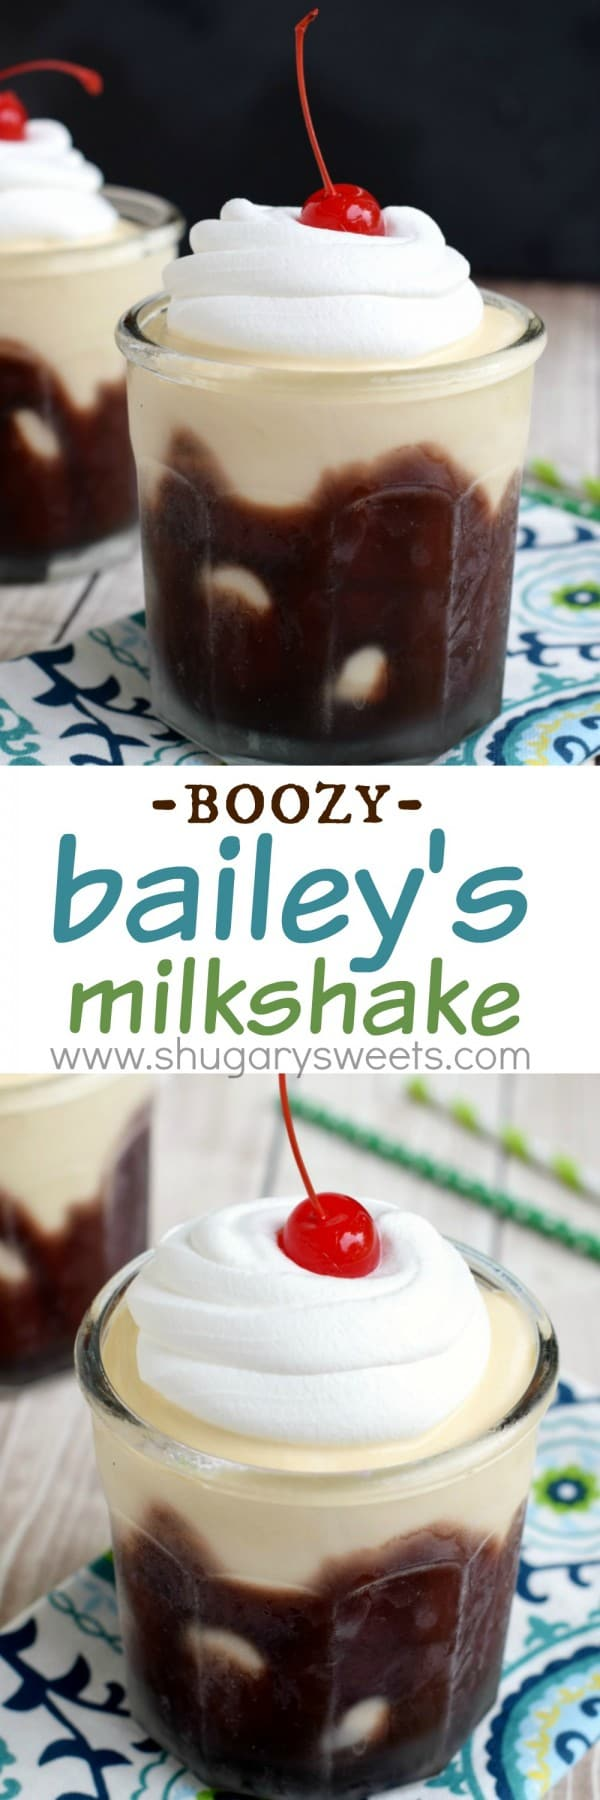 The Perfect Tan: a boozy Baileys Irish Cream milkshake perfect for a hot summer day!